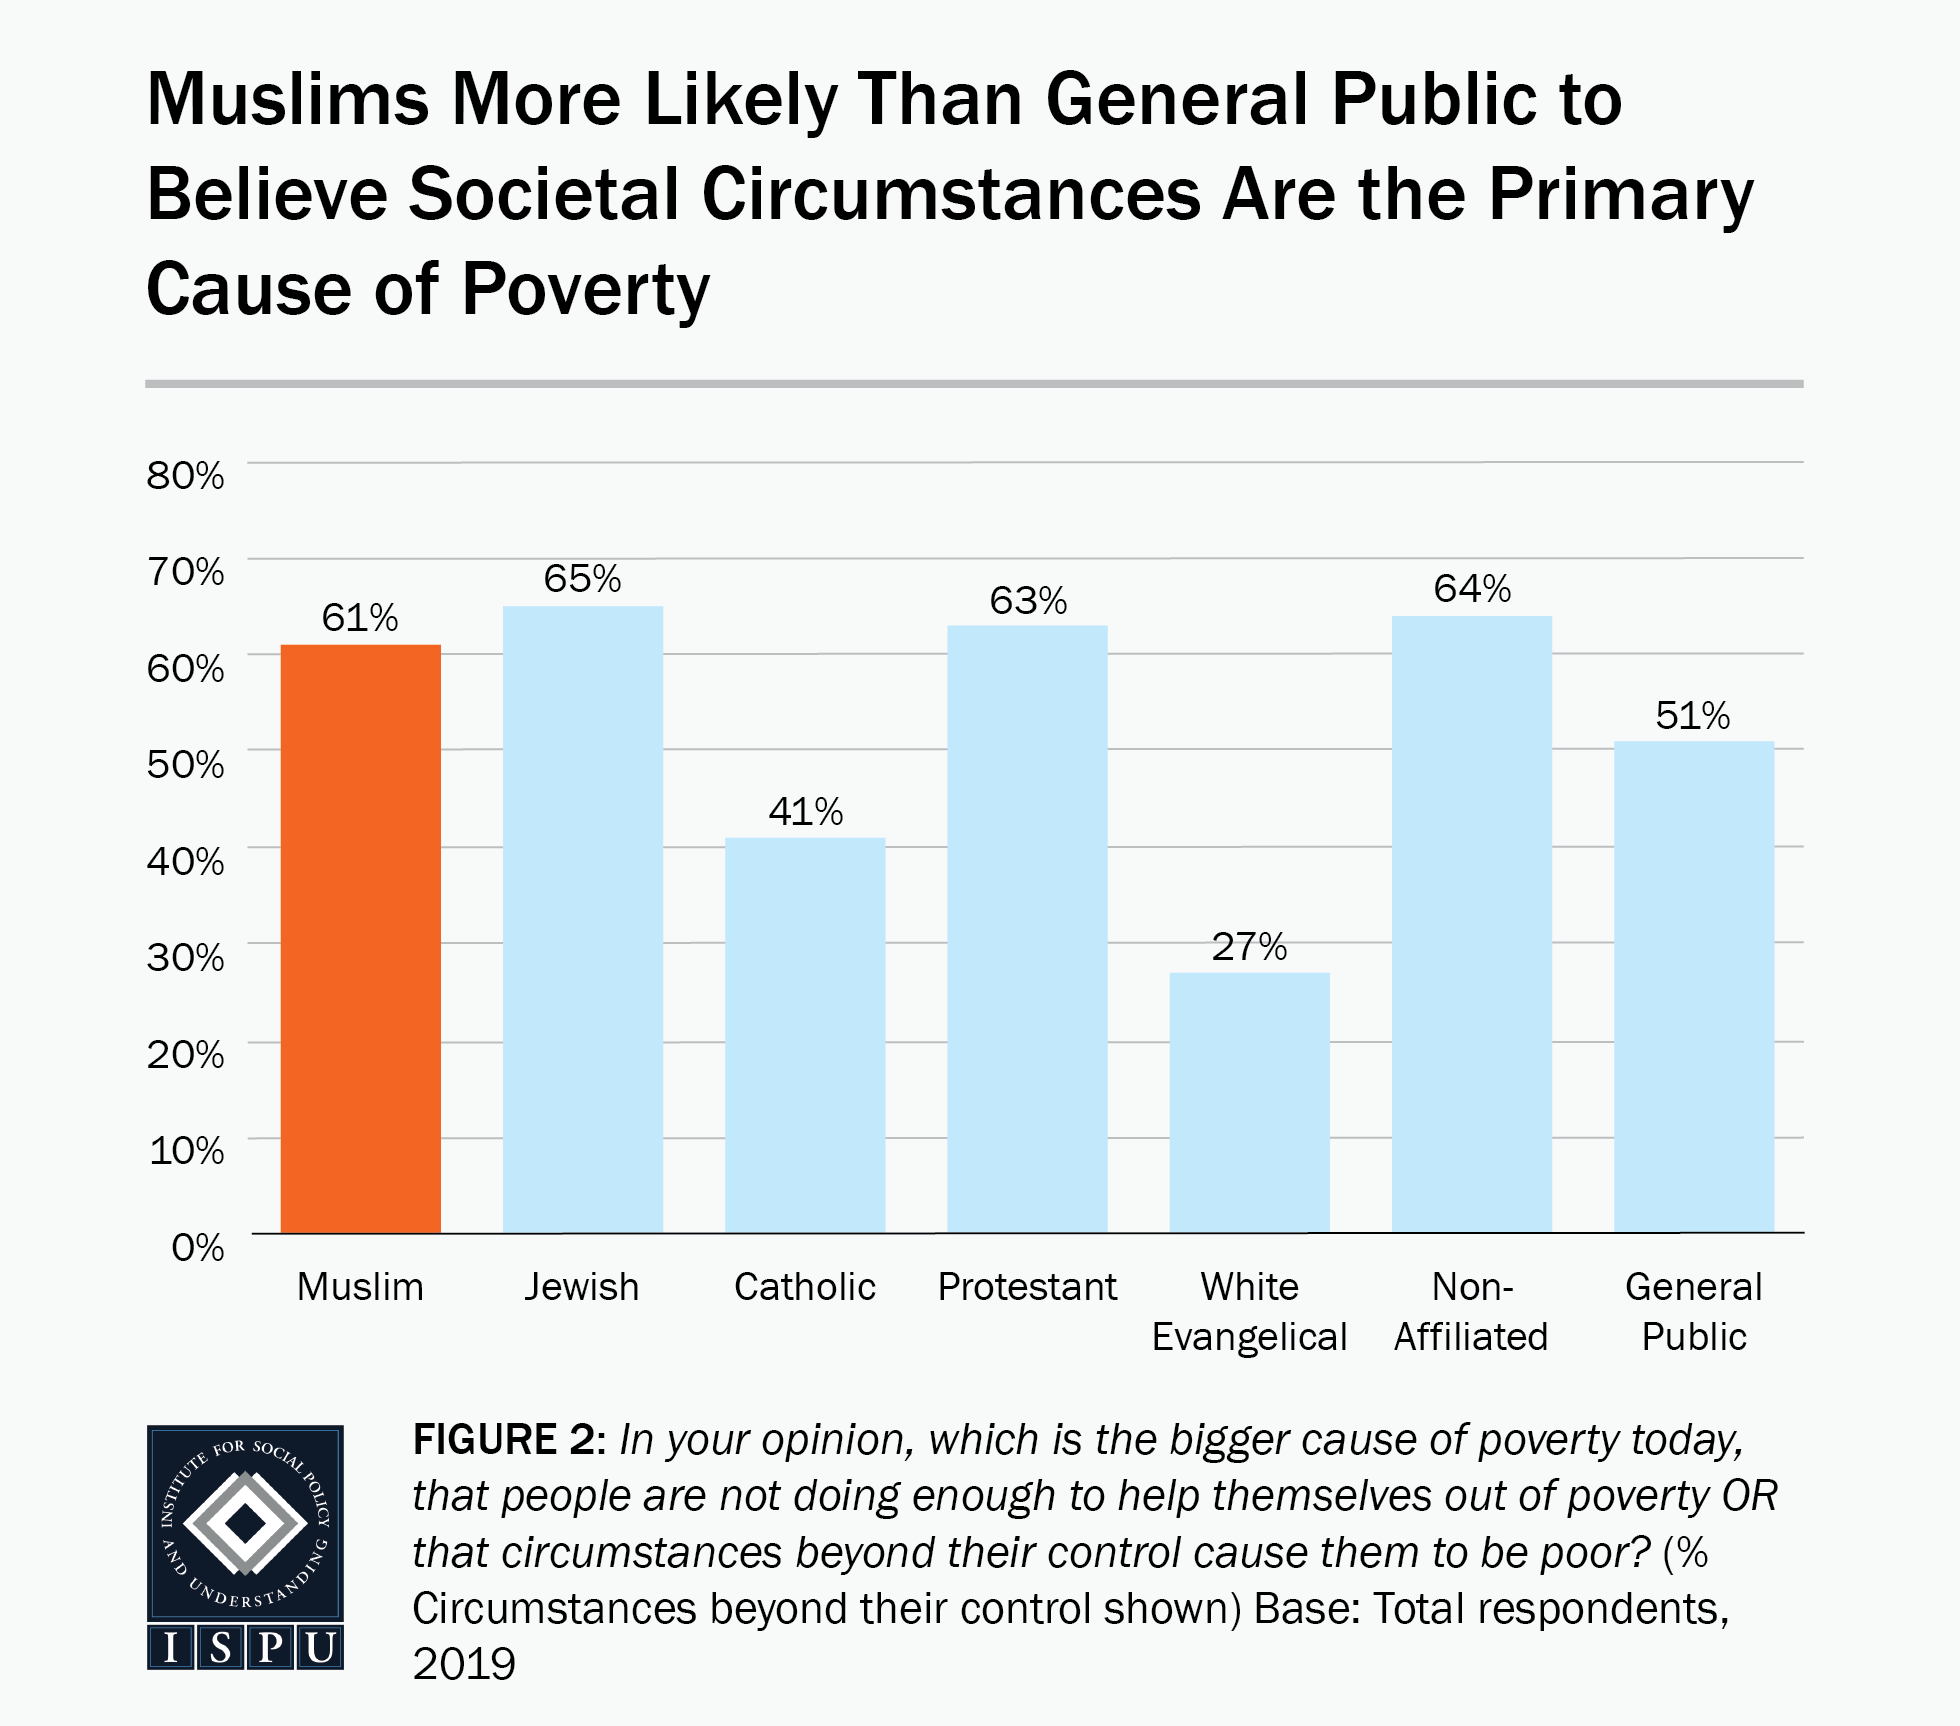 Figure 2: A bar graph showing that Muslims are more likely than the general public to believe societal circumstances are the primary cause of poverty